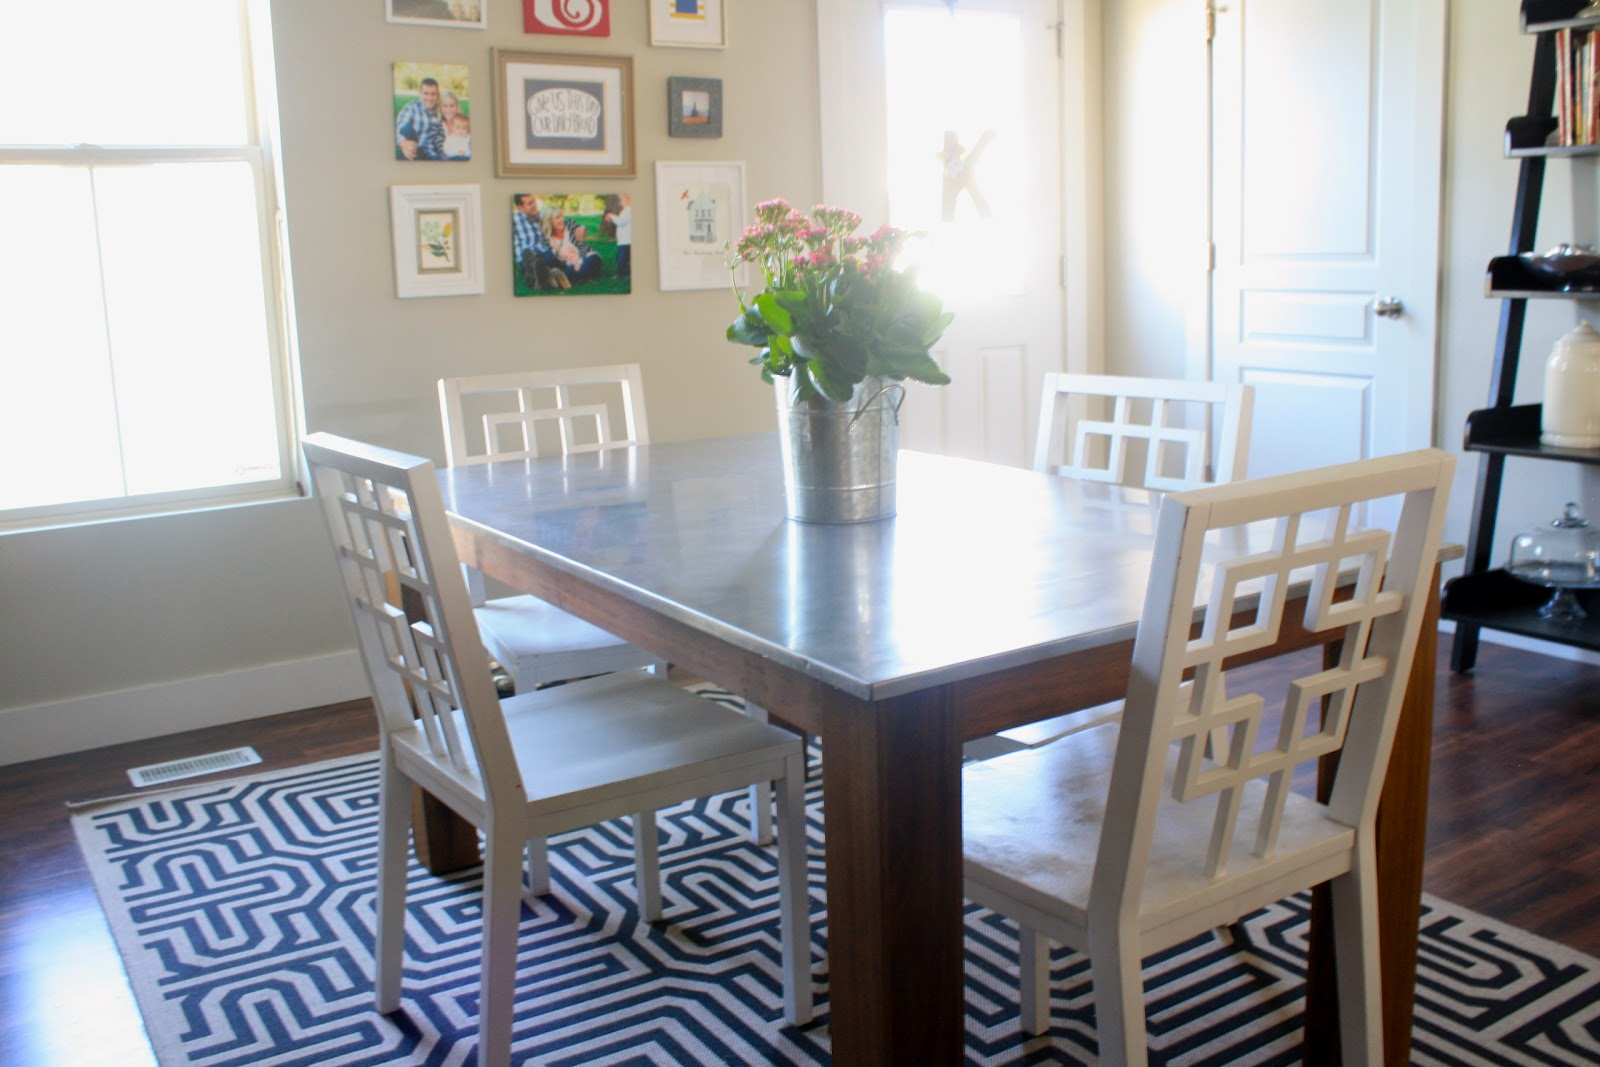 I Finally Have A New Kitchen Table House Of Jade Interiors Blog - West elm table and chairs